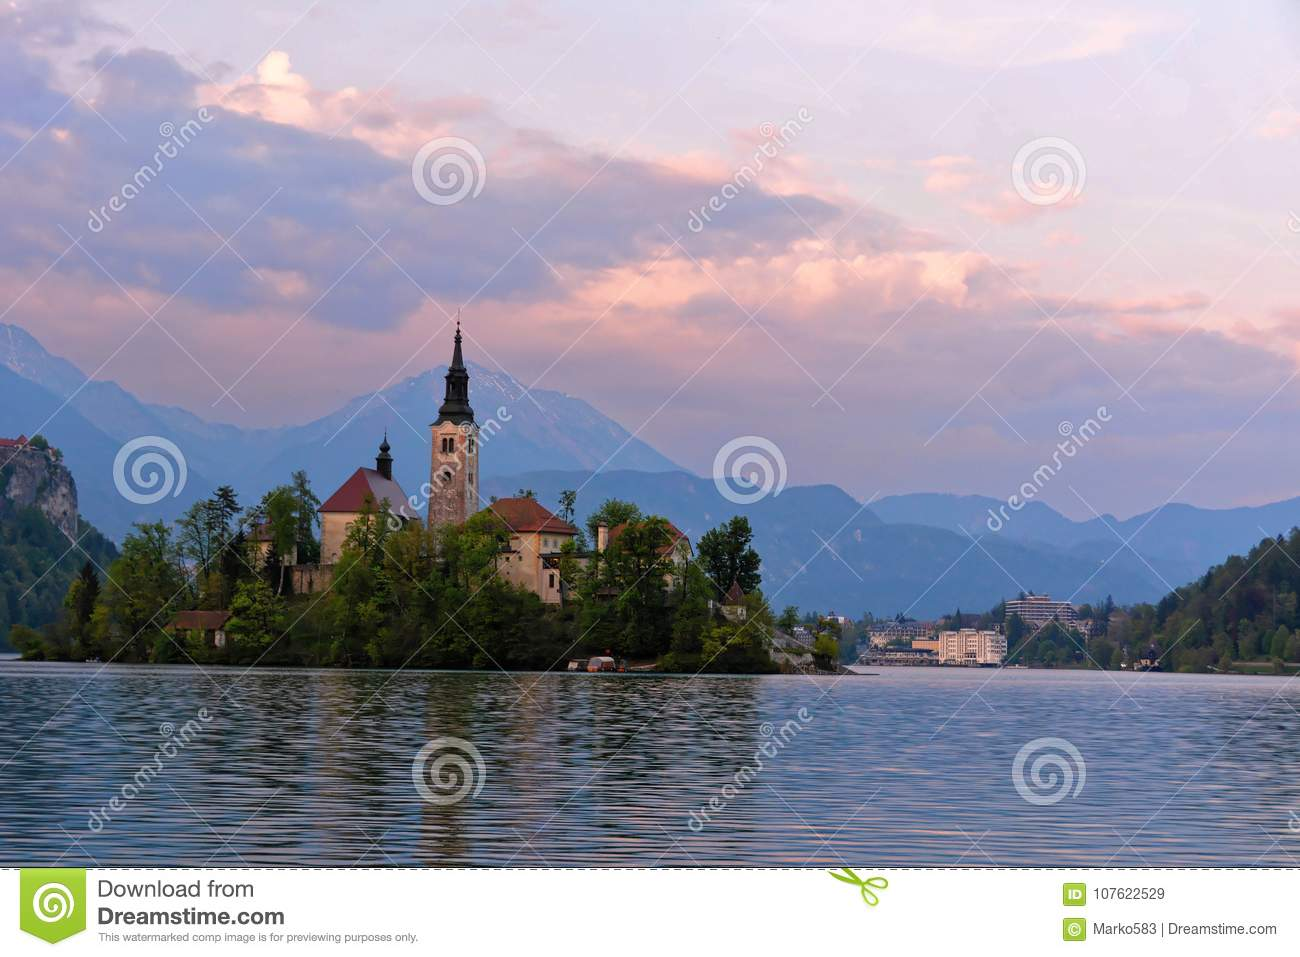 Little Island with Catholic Church in Bled Lake, Slovenia